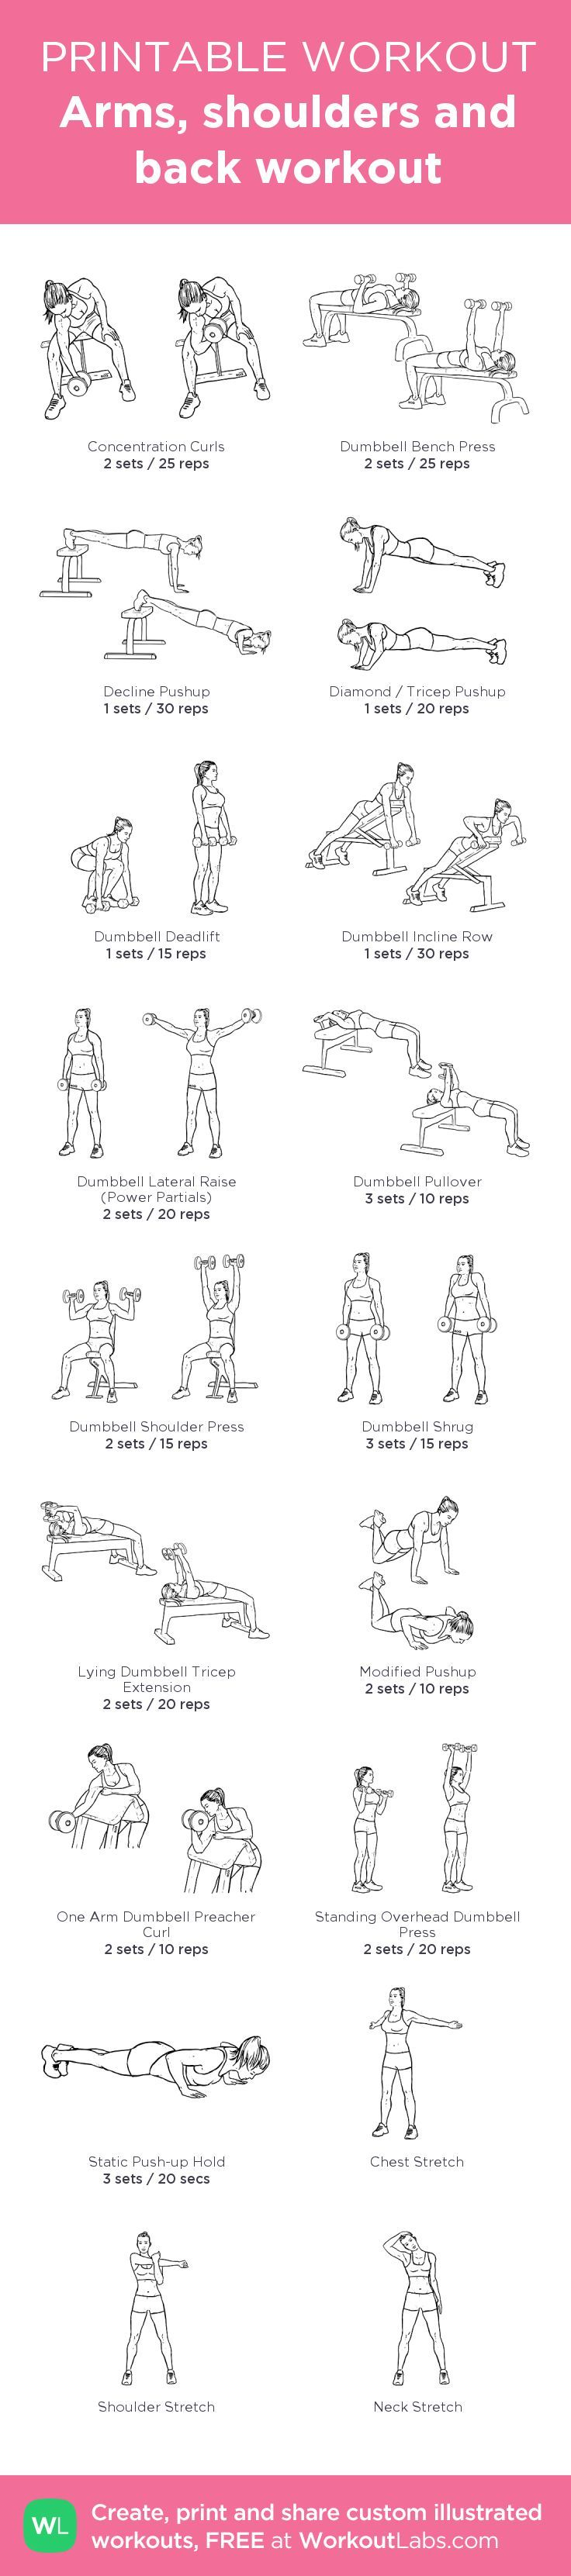 Arms, shoulders and back workout @WorkoutLabs #workoutlabs